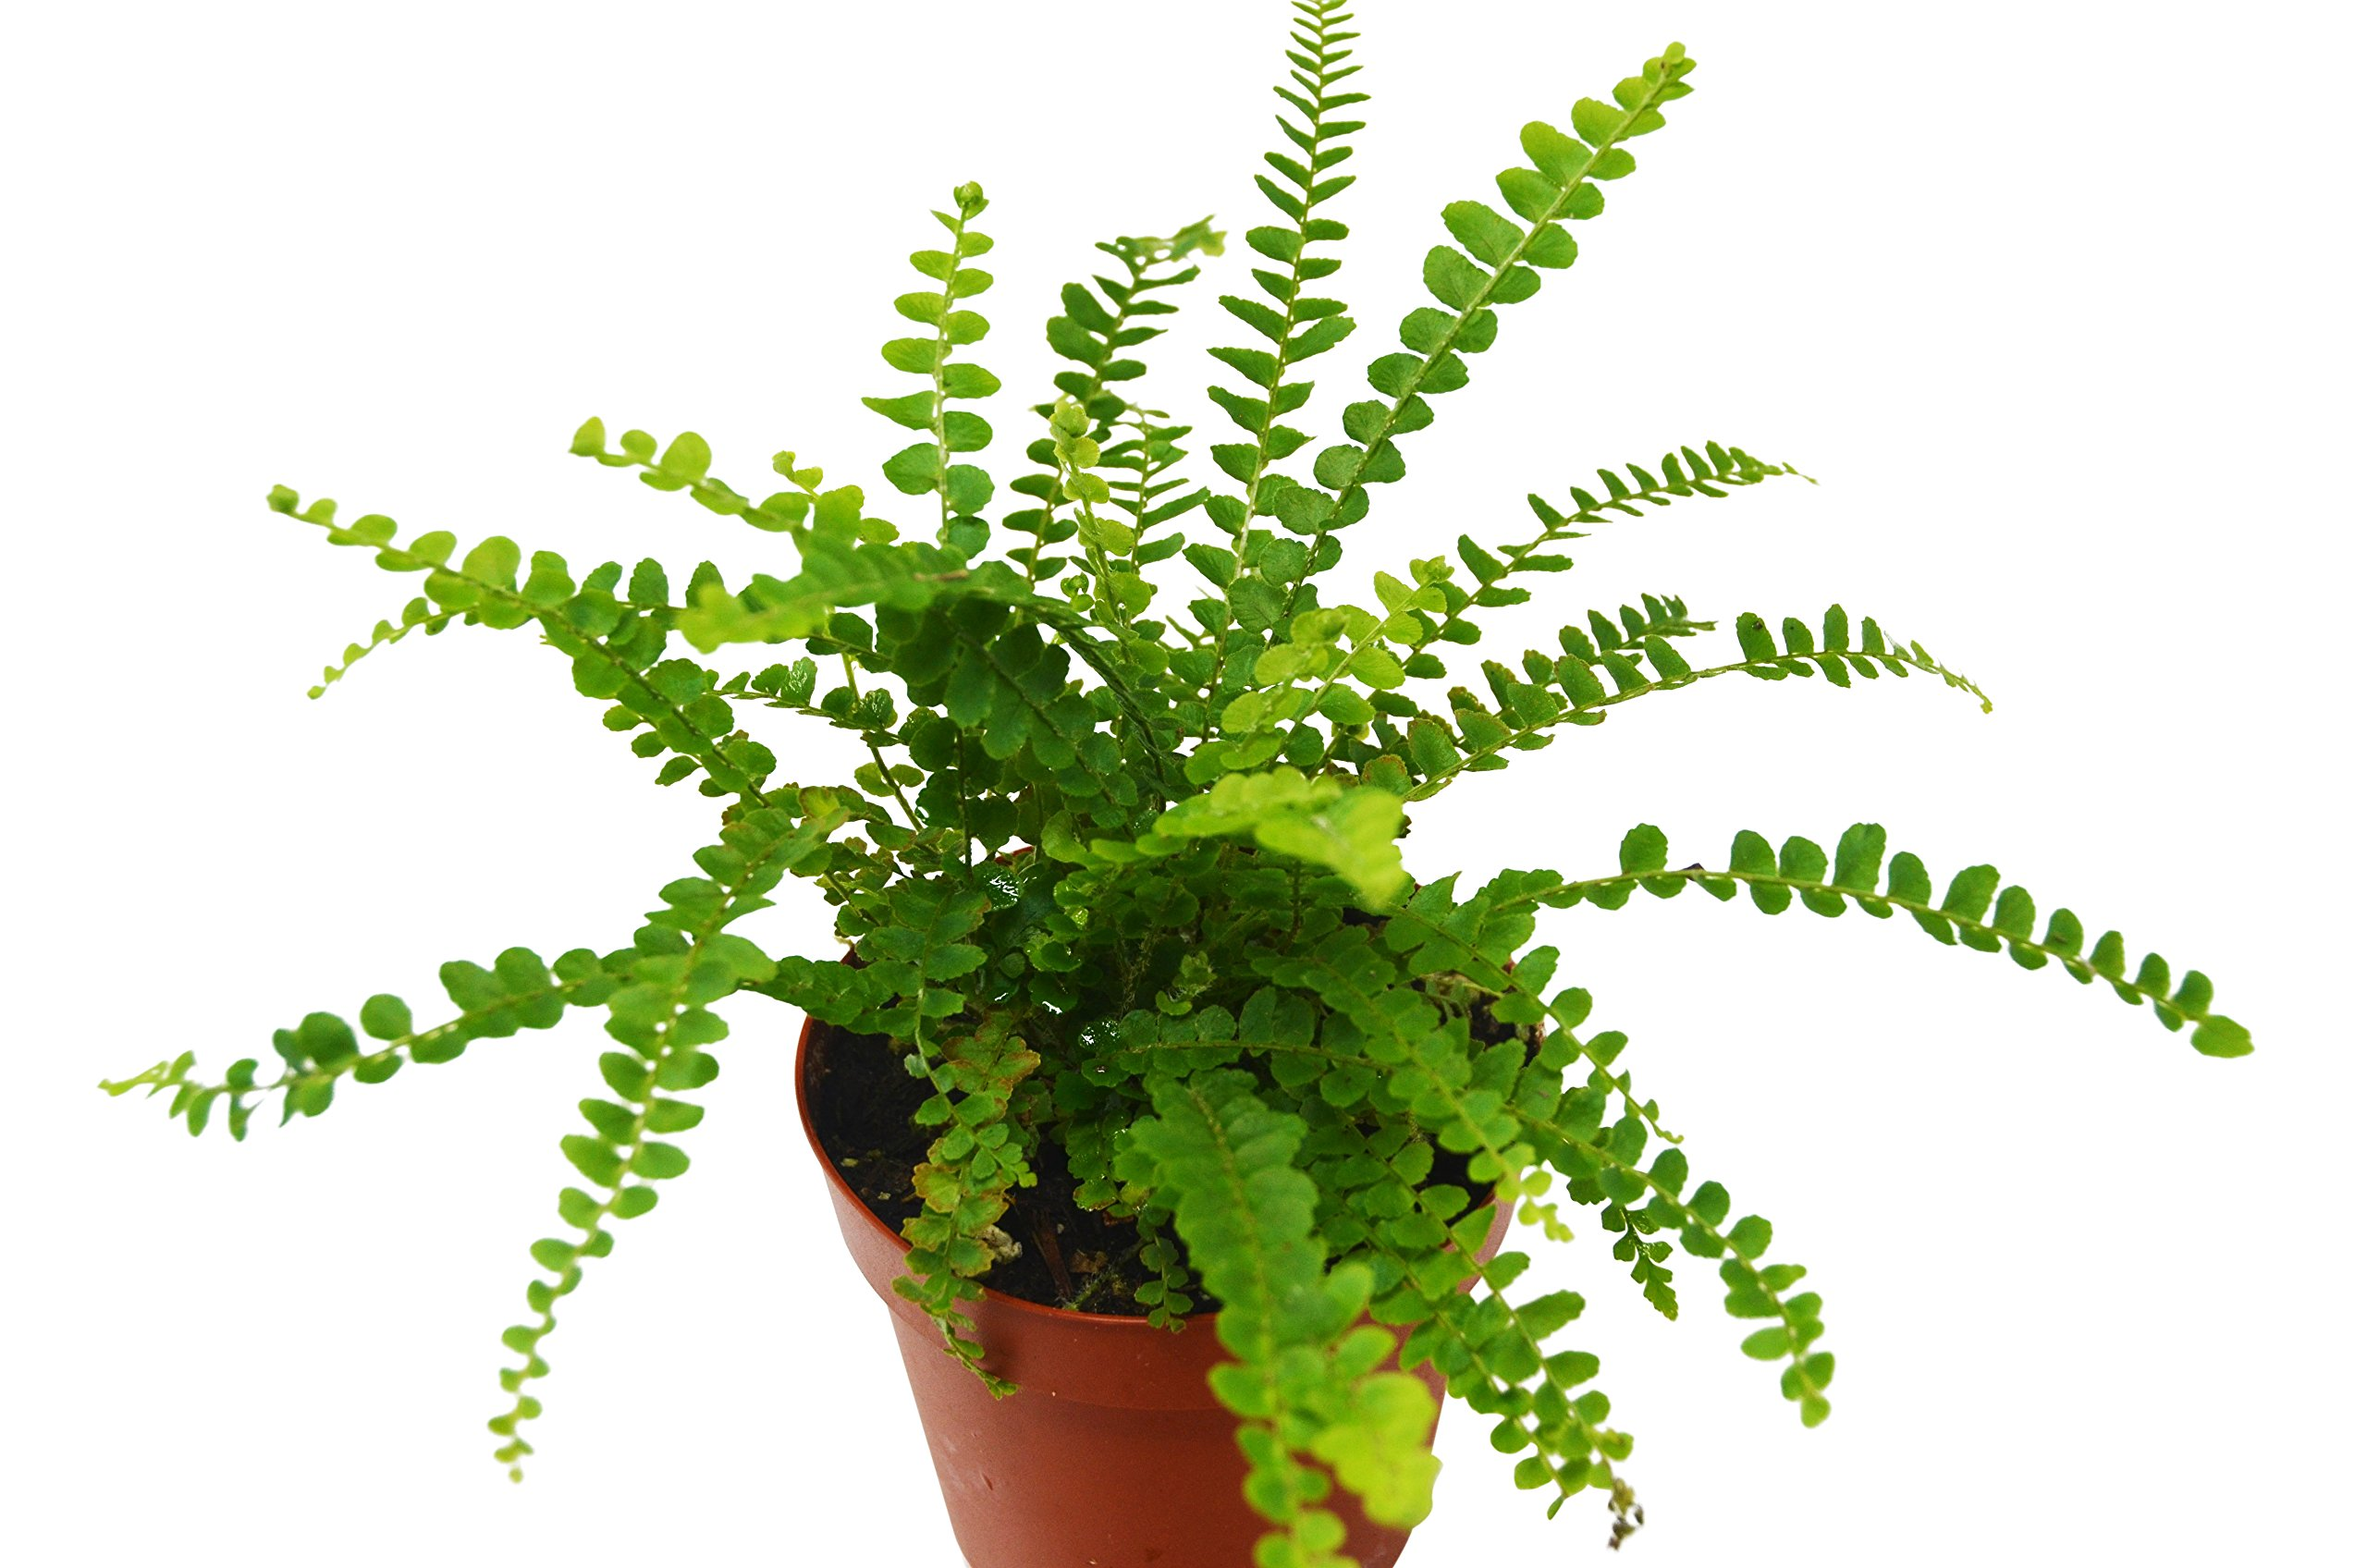 Lemon Butter Fern - Live Plant - FREE Care Guide - 4'' Pot - Low Light House Plant by House Plant Shop